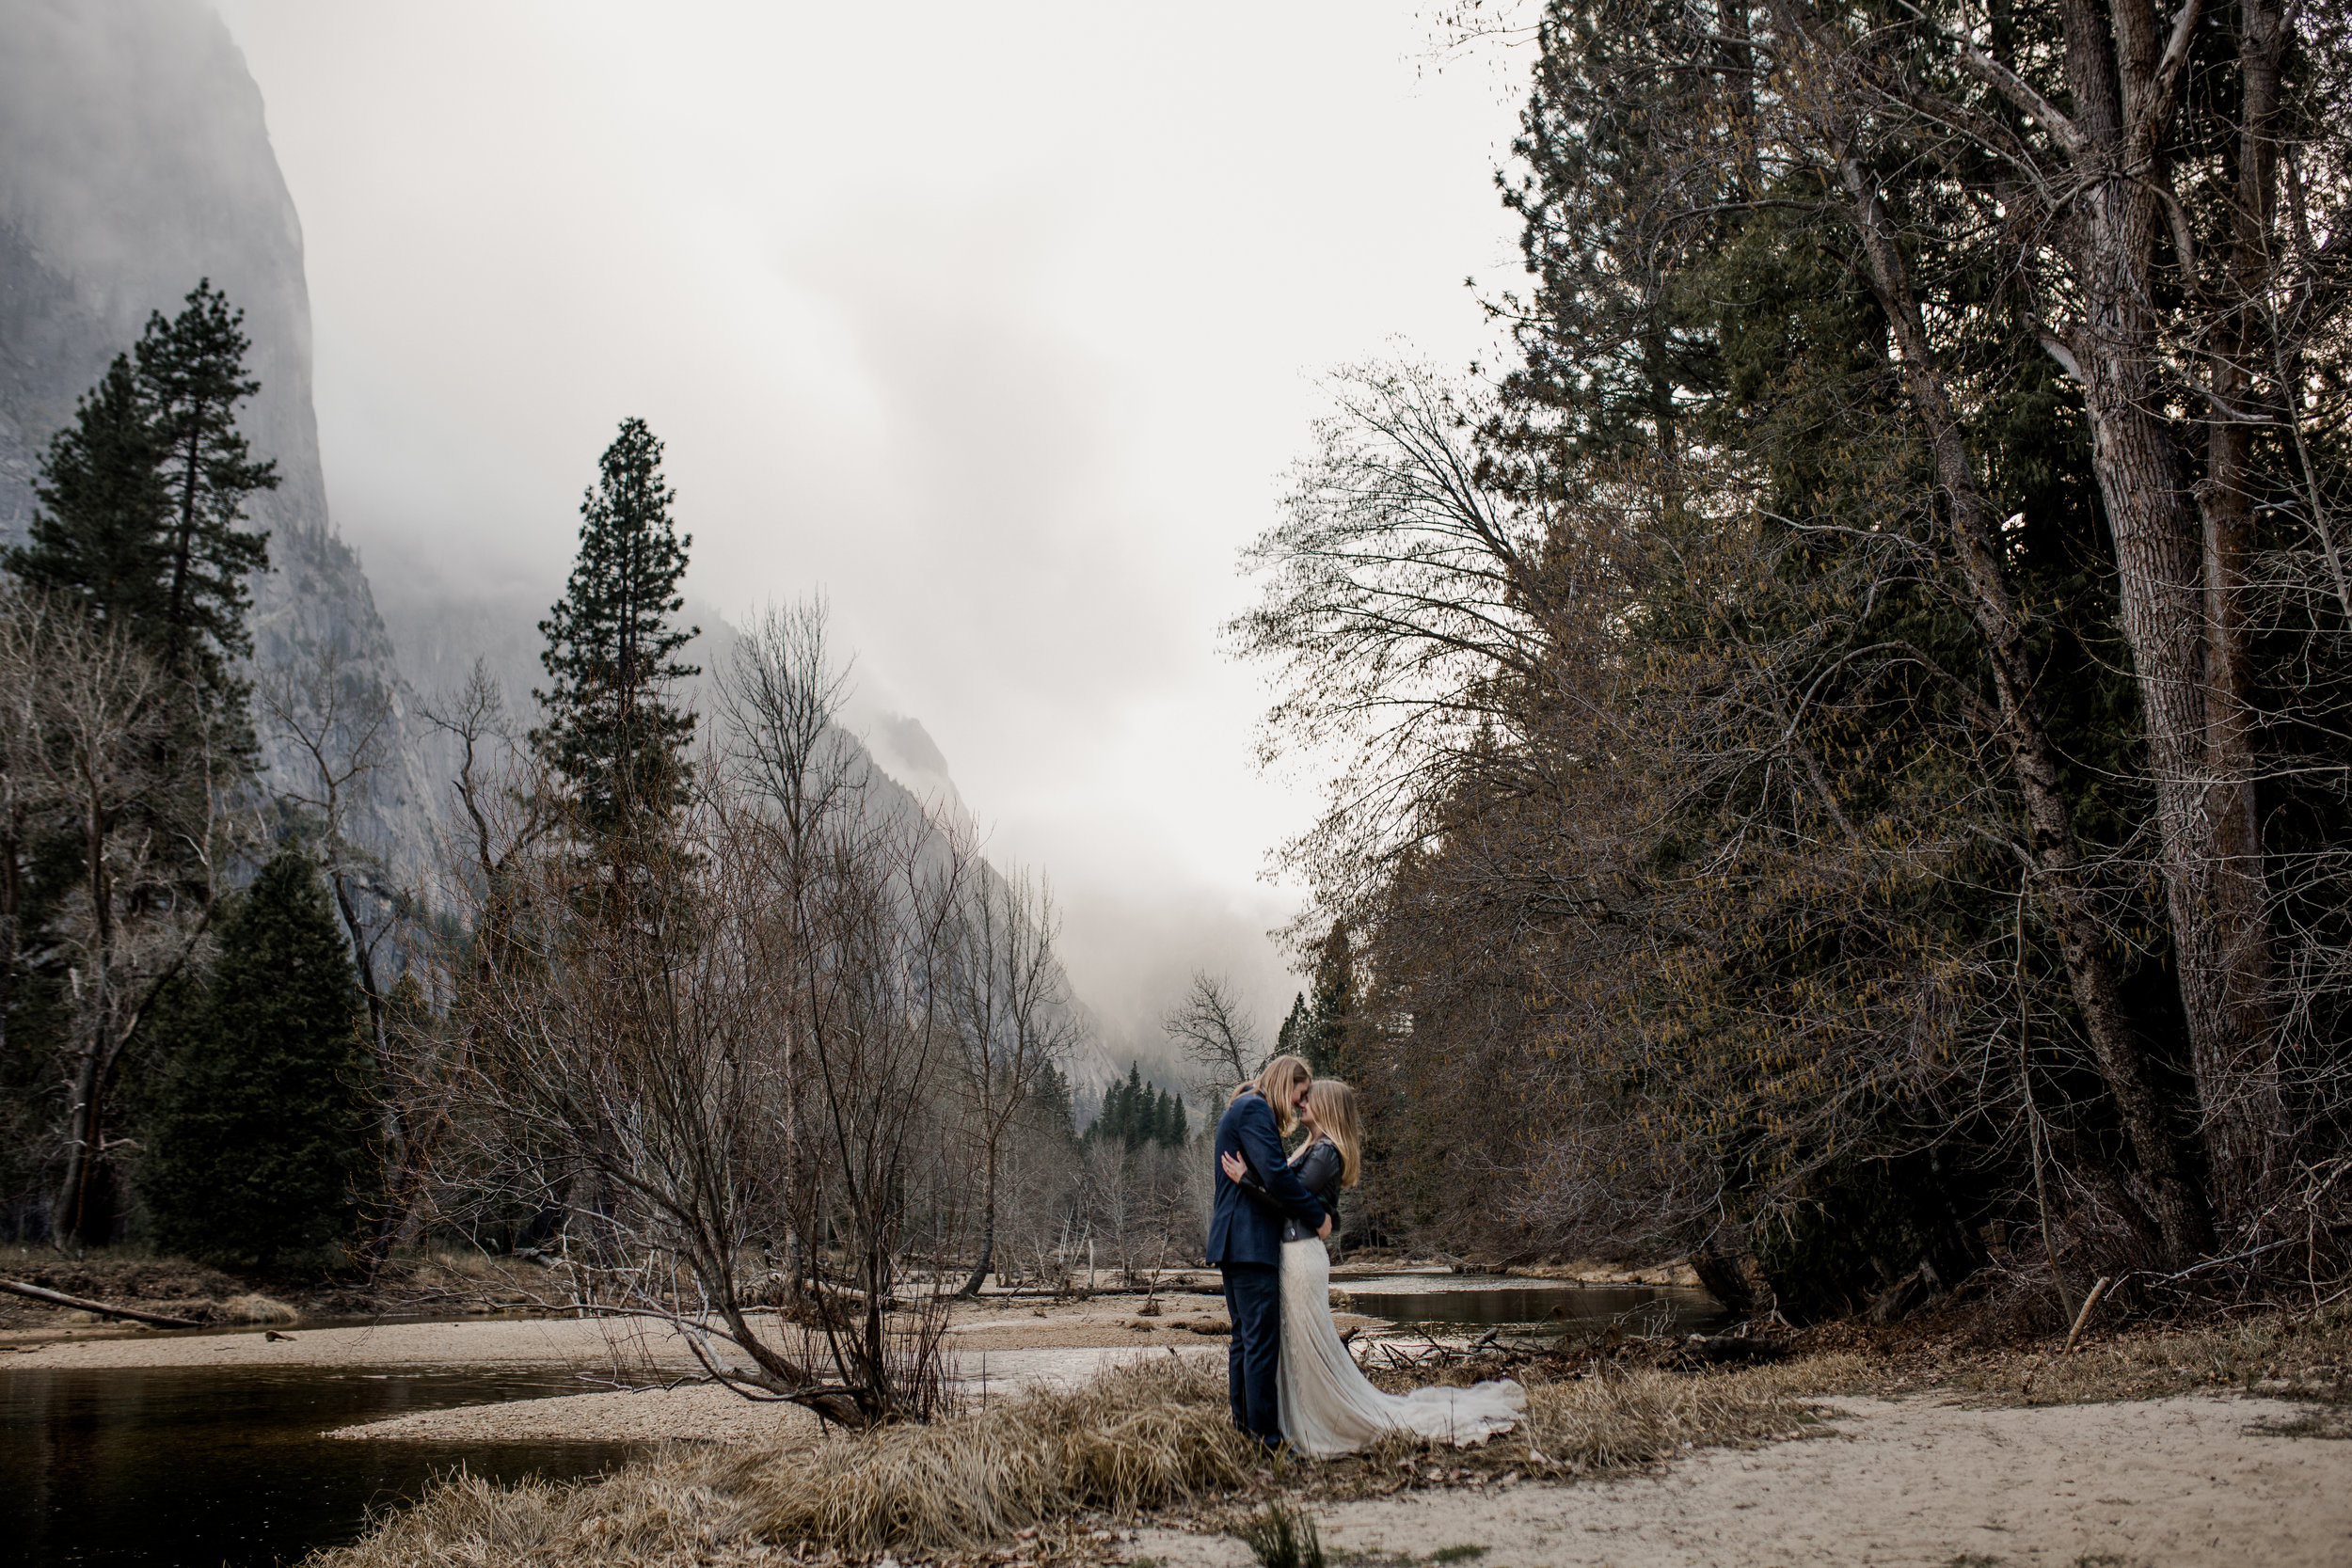 nicole-daacke-photography-yousemite-national-park-elopement-photographer-winter-cloud-moody-elope-inspiration-yosemite-valley-tunnel-view-winter-cloud-fog-weather-wedding-photos-44.jpg